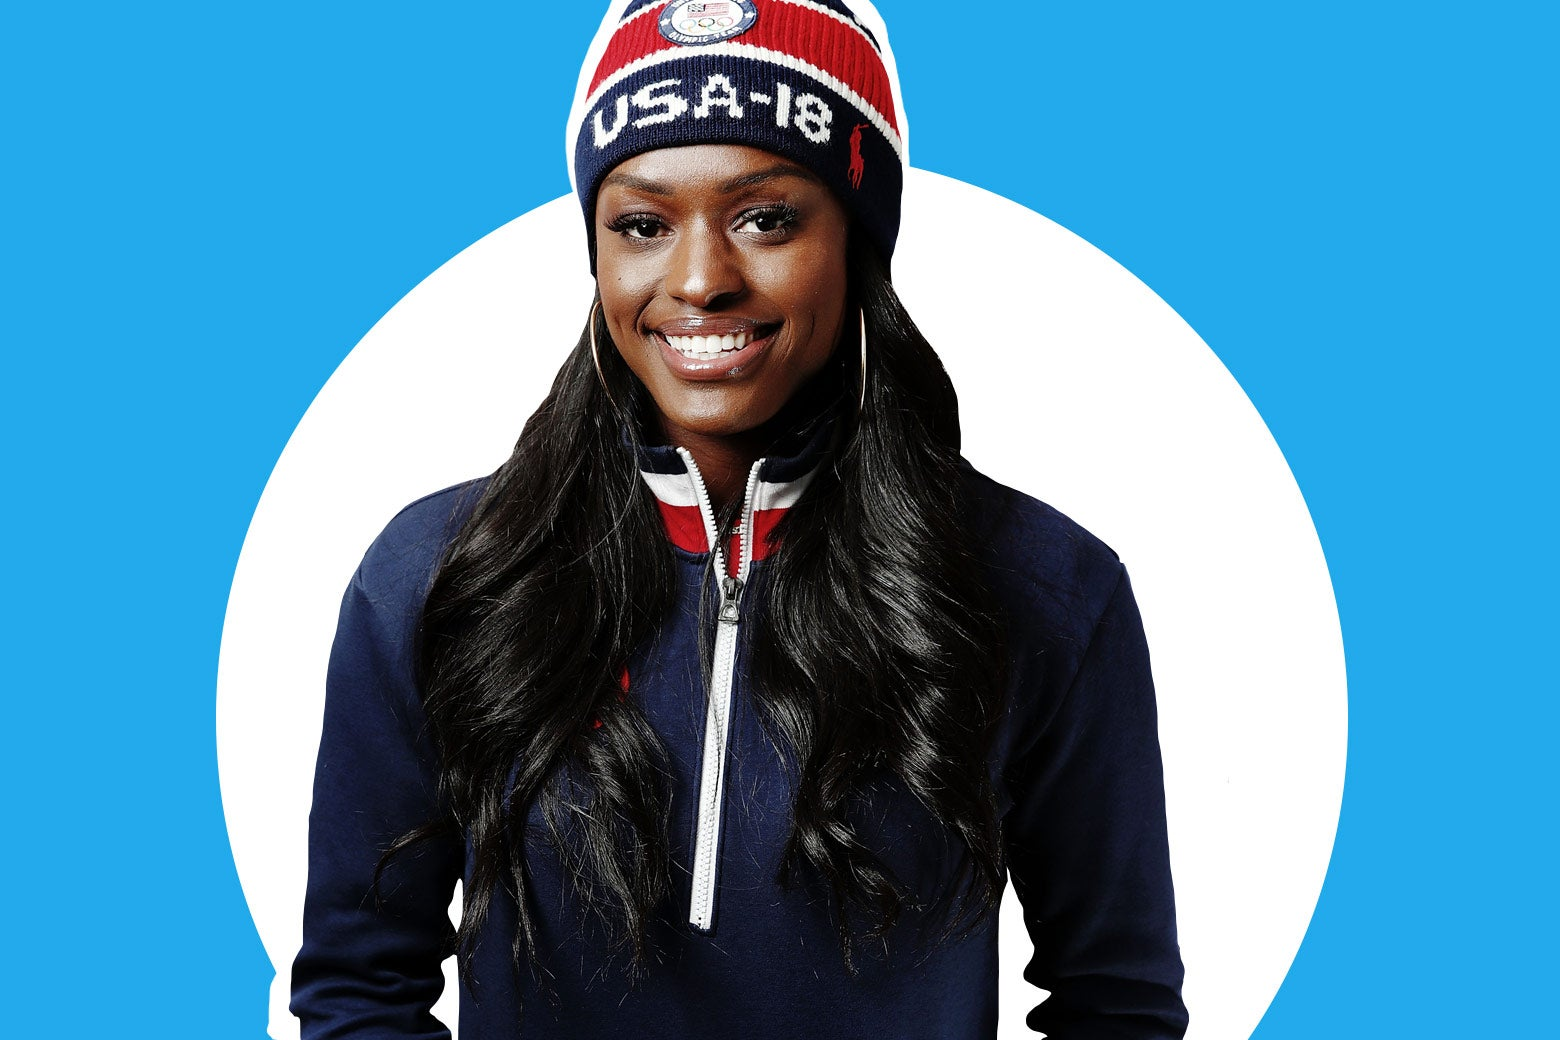 United States Women's Bobsled team member Aja Evans poses for a portrait on the Today Show Set on February 15, 2018 in Gangneung, South Korea. (Photo by Marianna Massey/Getty Images)